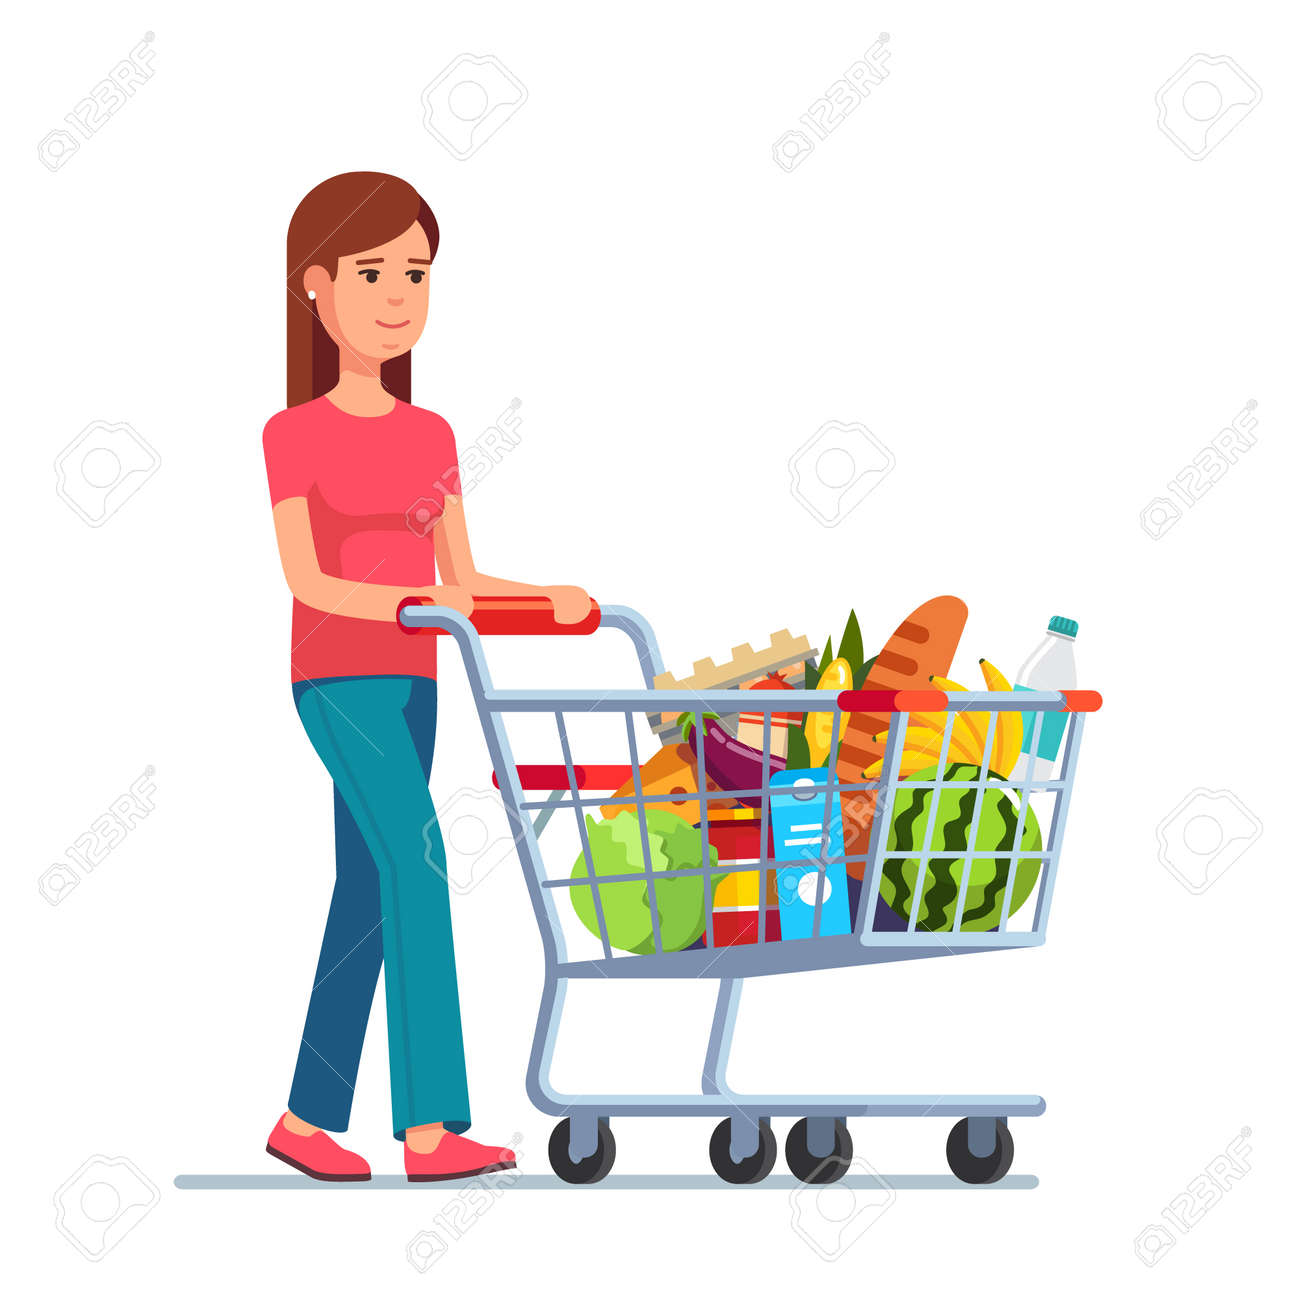 Young woman pushing supermarket shopping cart full of groceries. Flat style vector illustration isolated on white background. Foto de archivo - 54217162